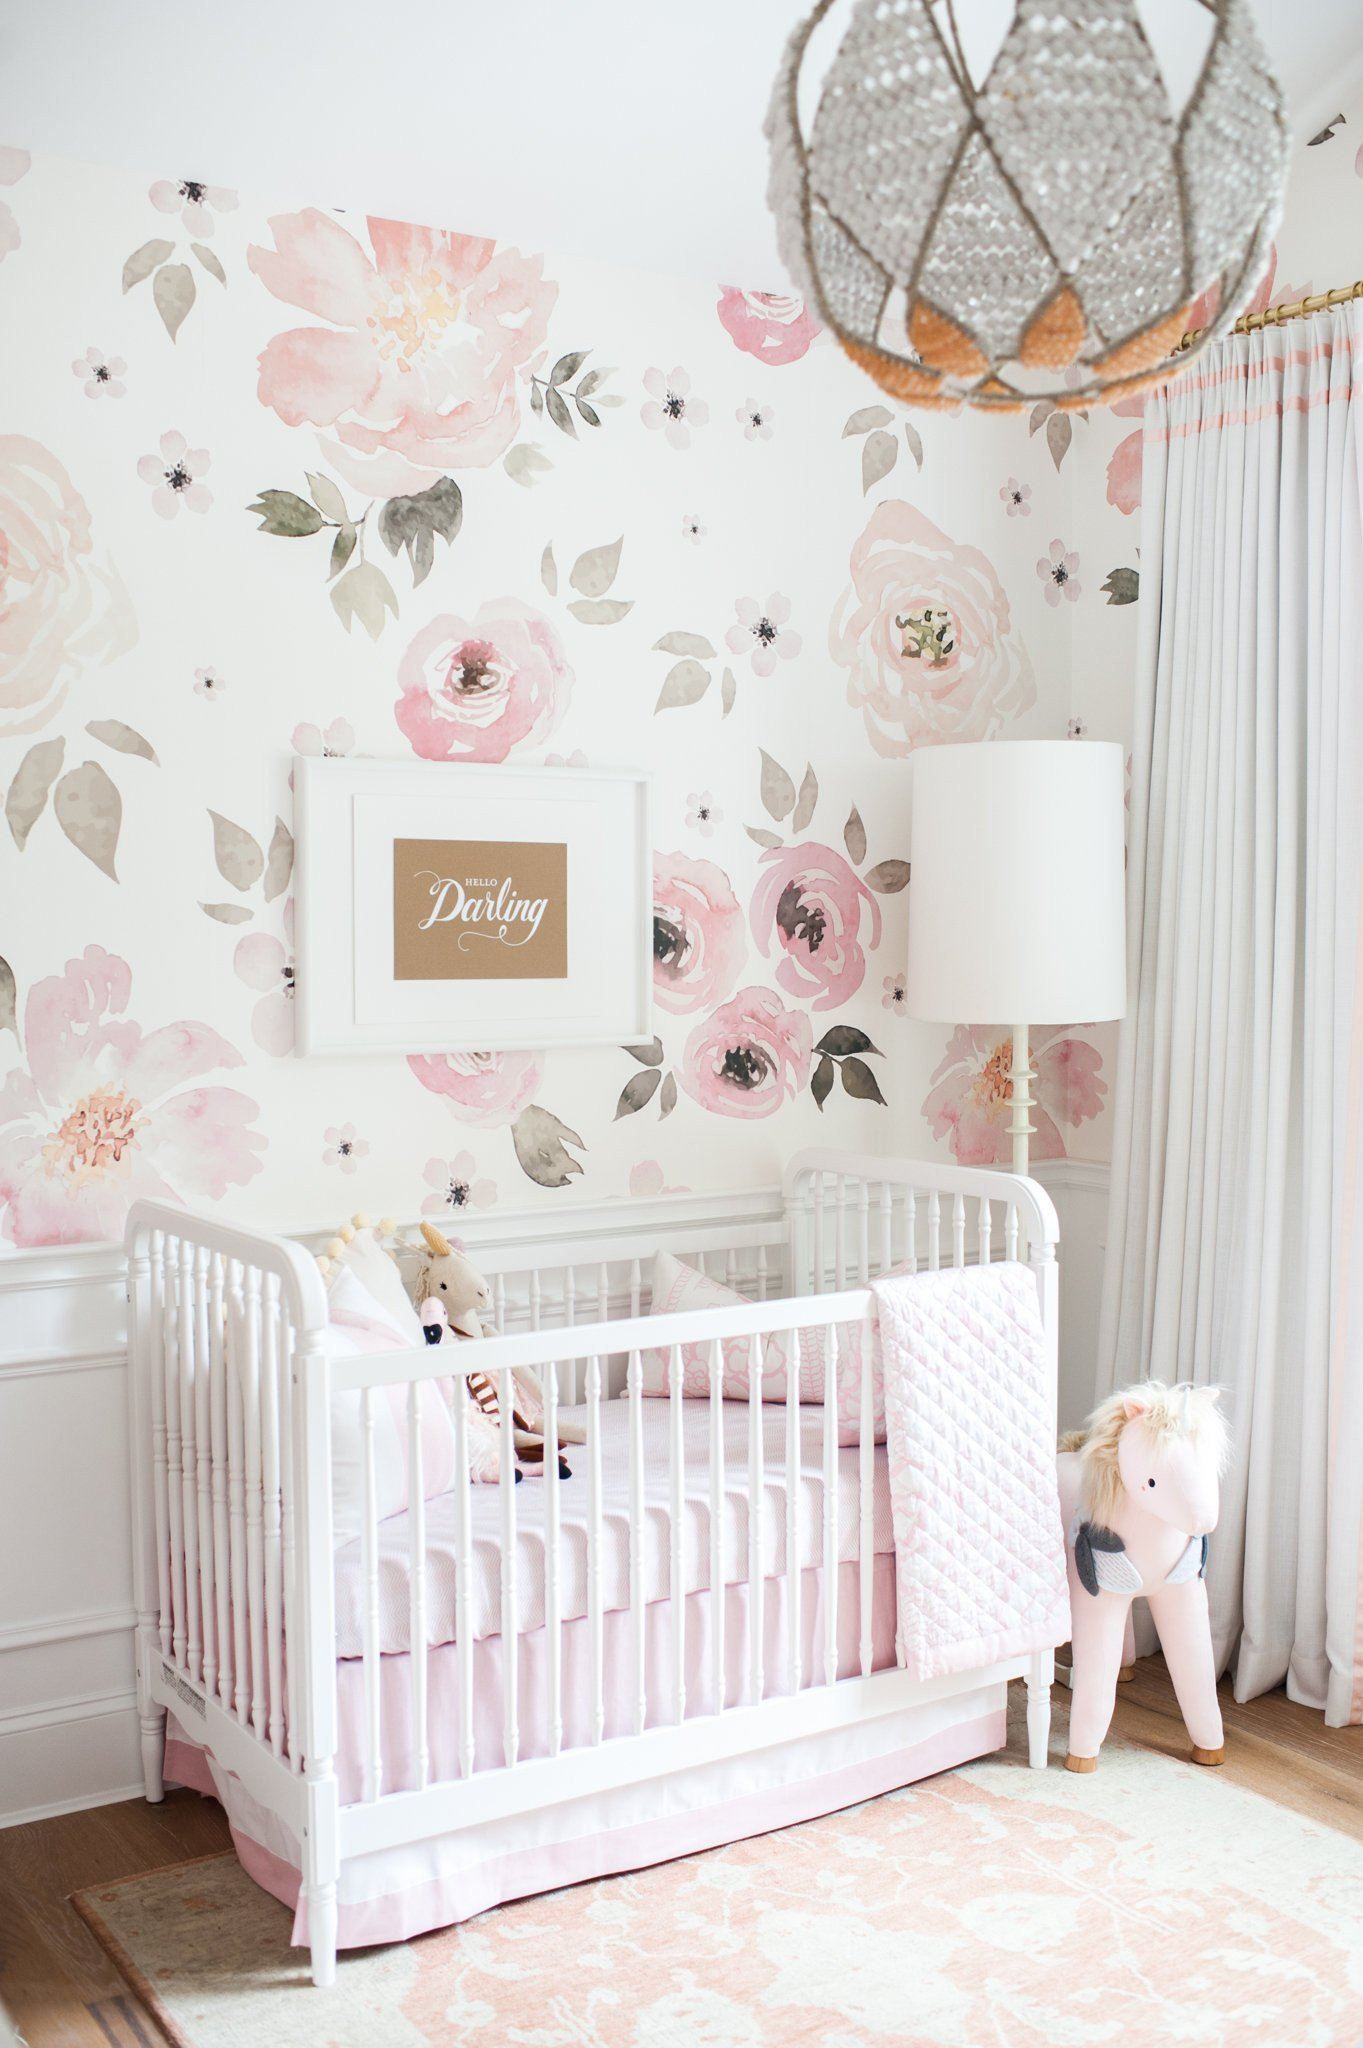 blush pink, white and sage green floral nursery with faux